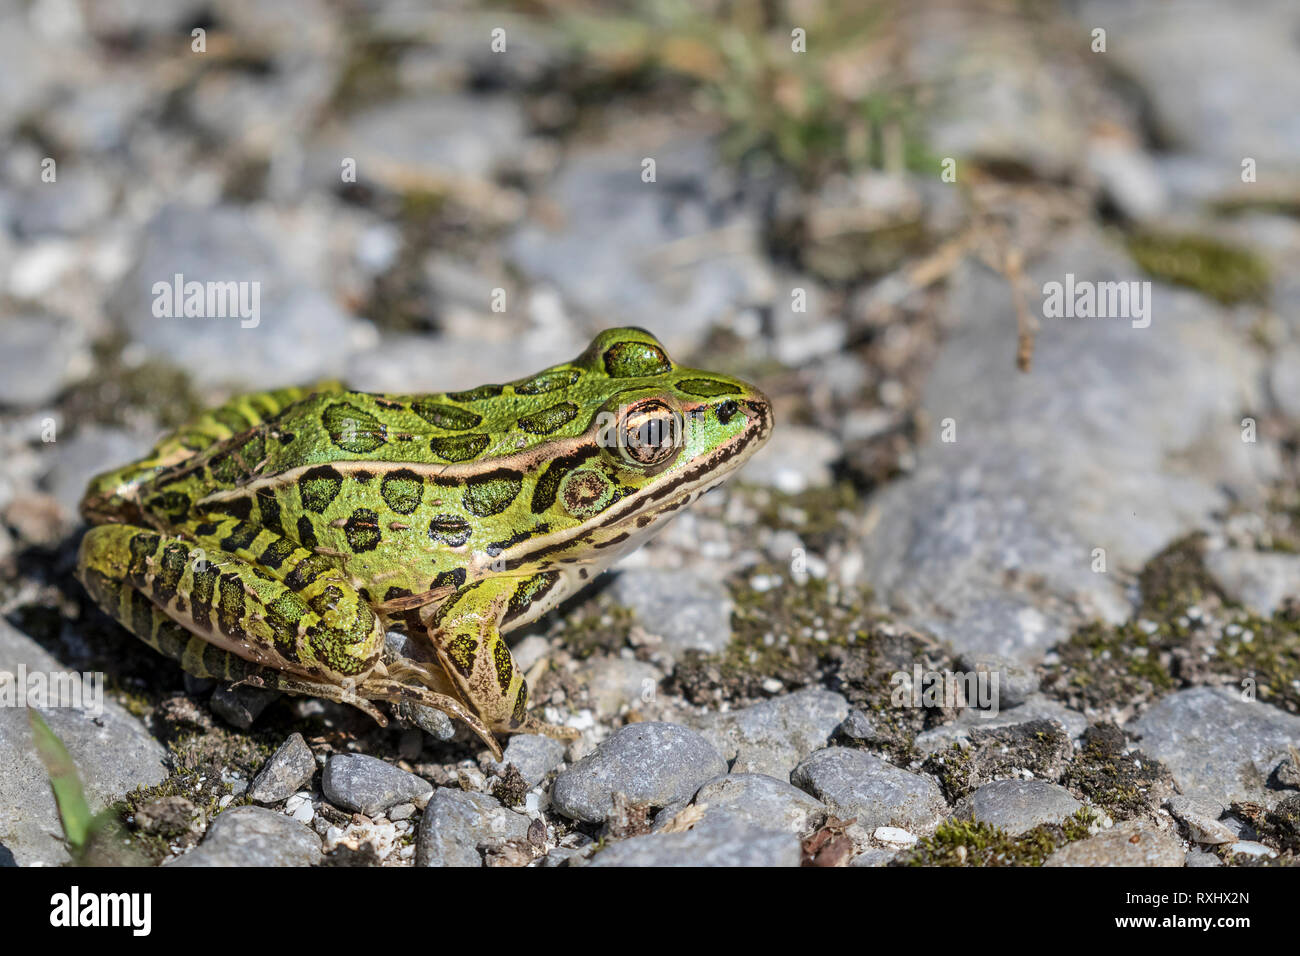 Northern Leopard Frog (Lithobates pipiens), Prince Edward Point National Wildlife Area, Ontario, Canada - Stock Image